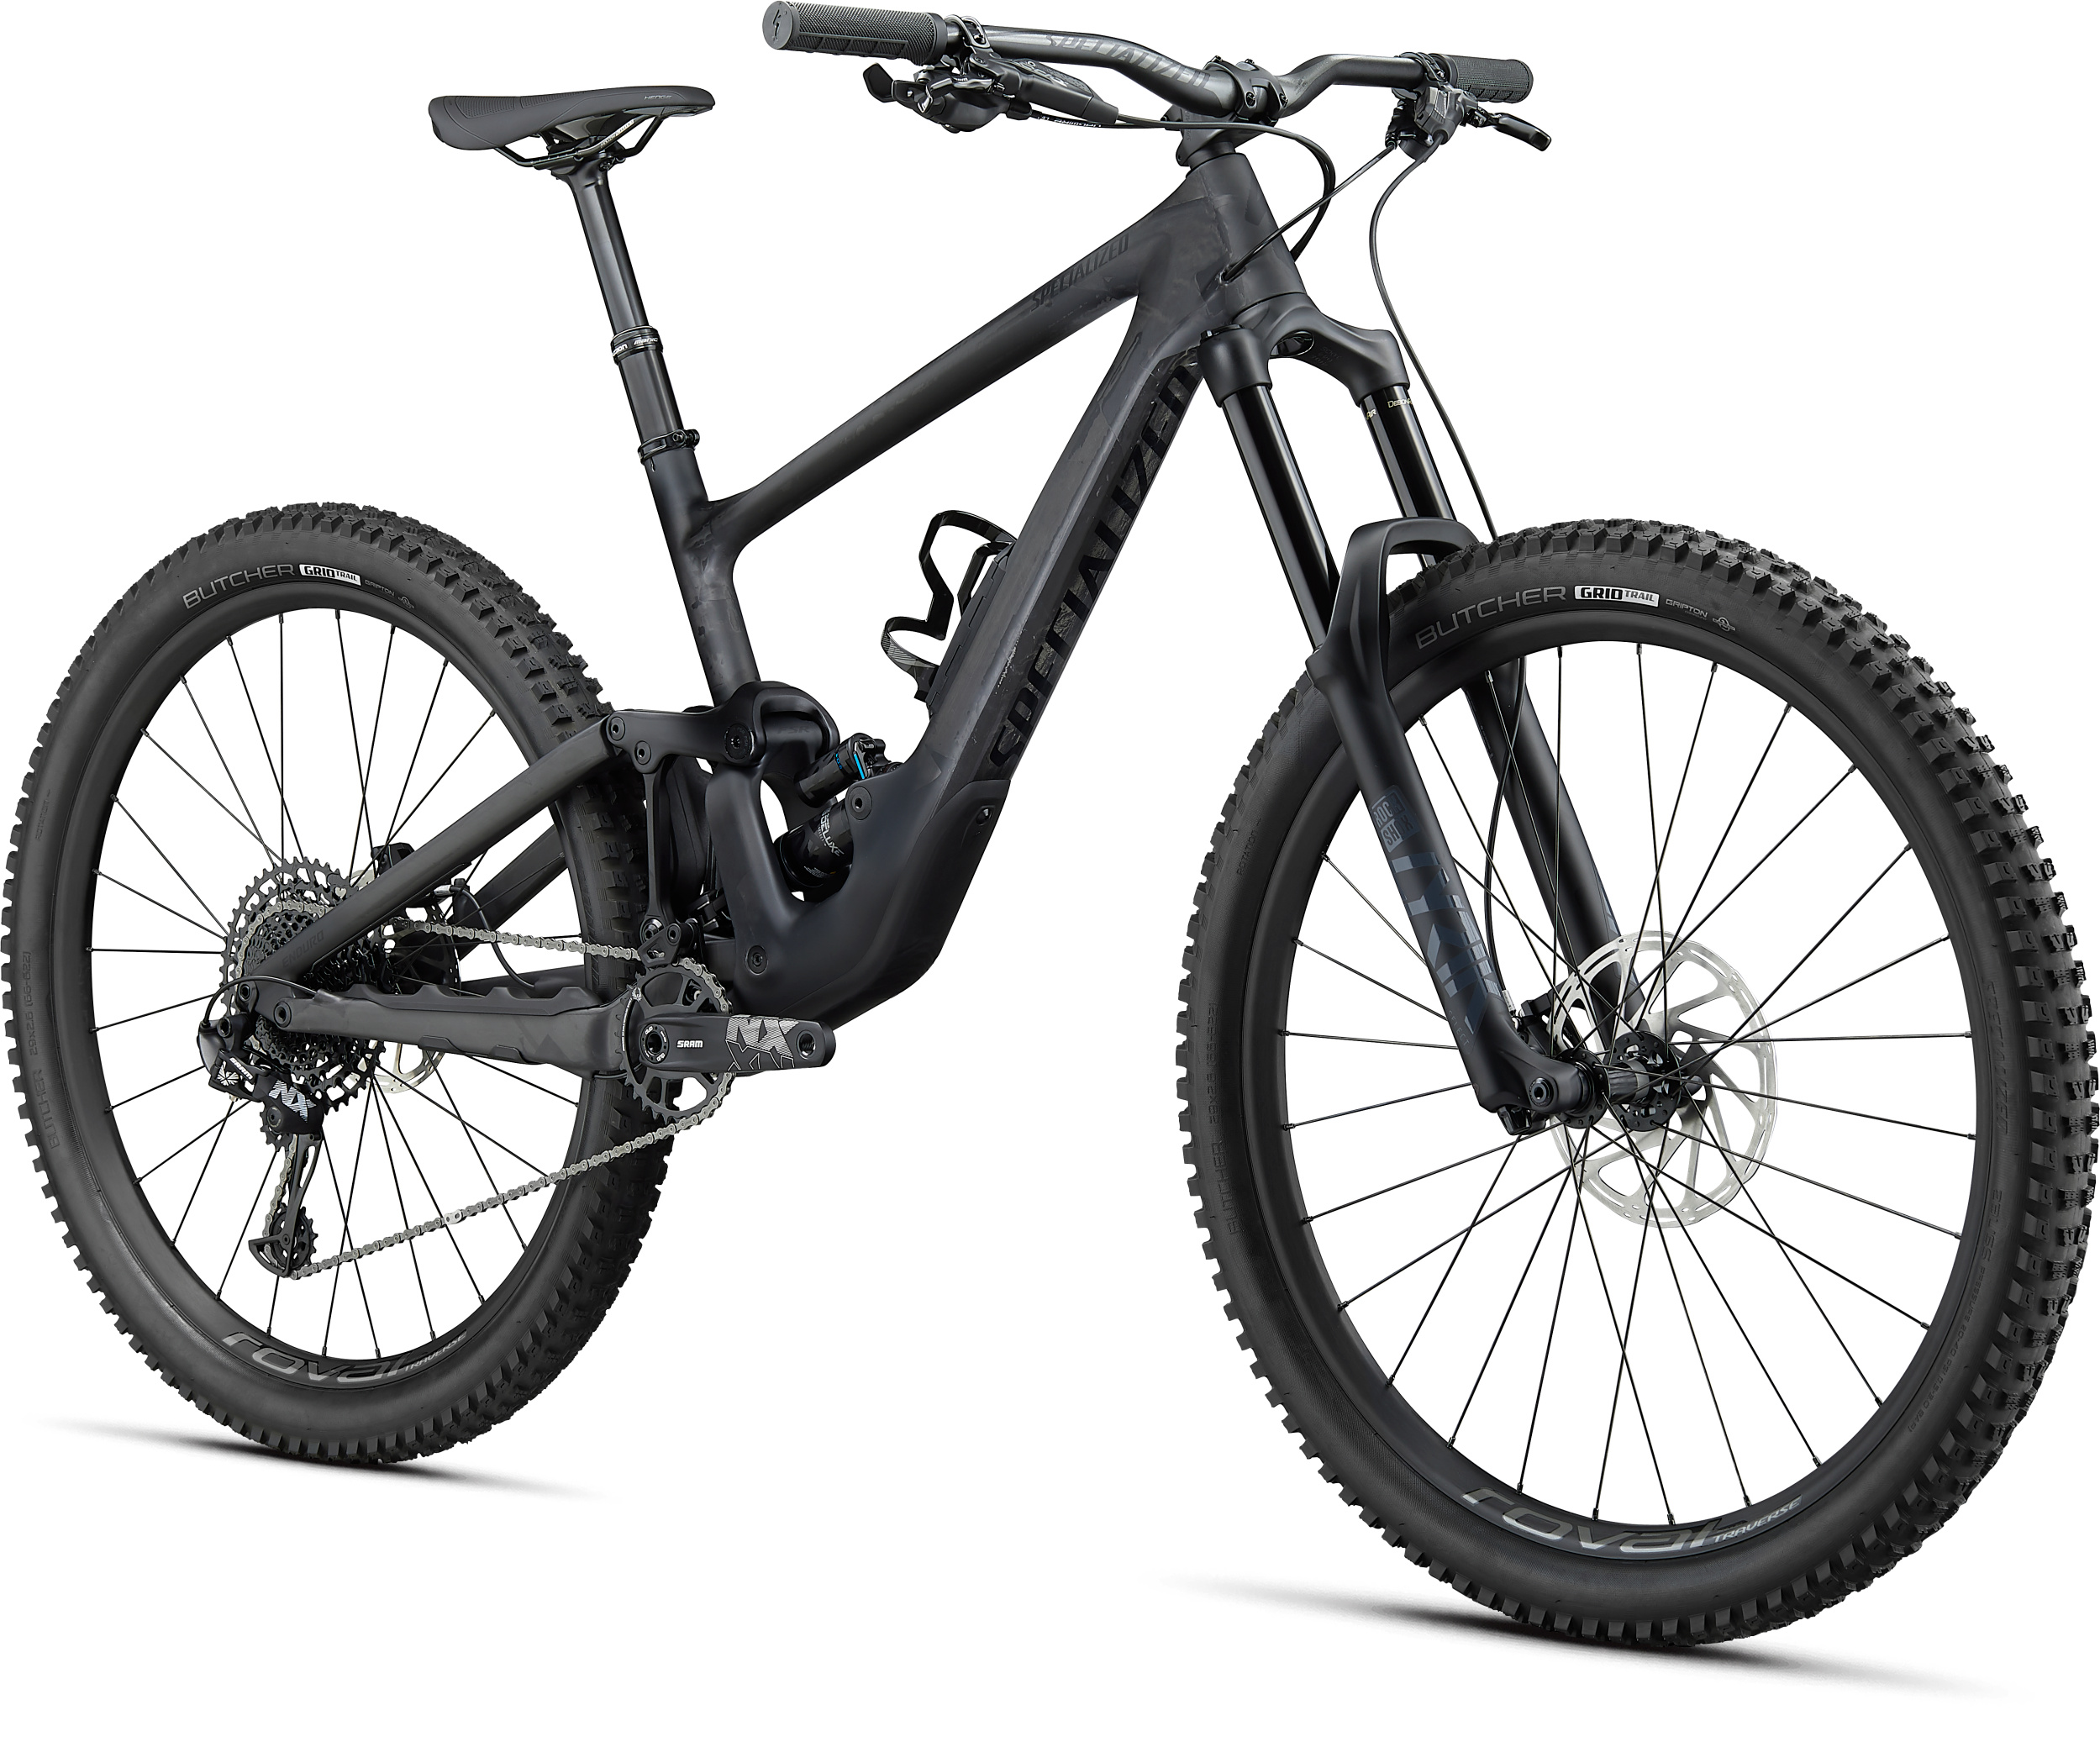 93620-52_ENDURO-COMP-CARBON-29-BLK-CHAR_